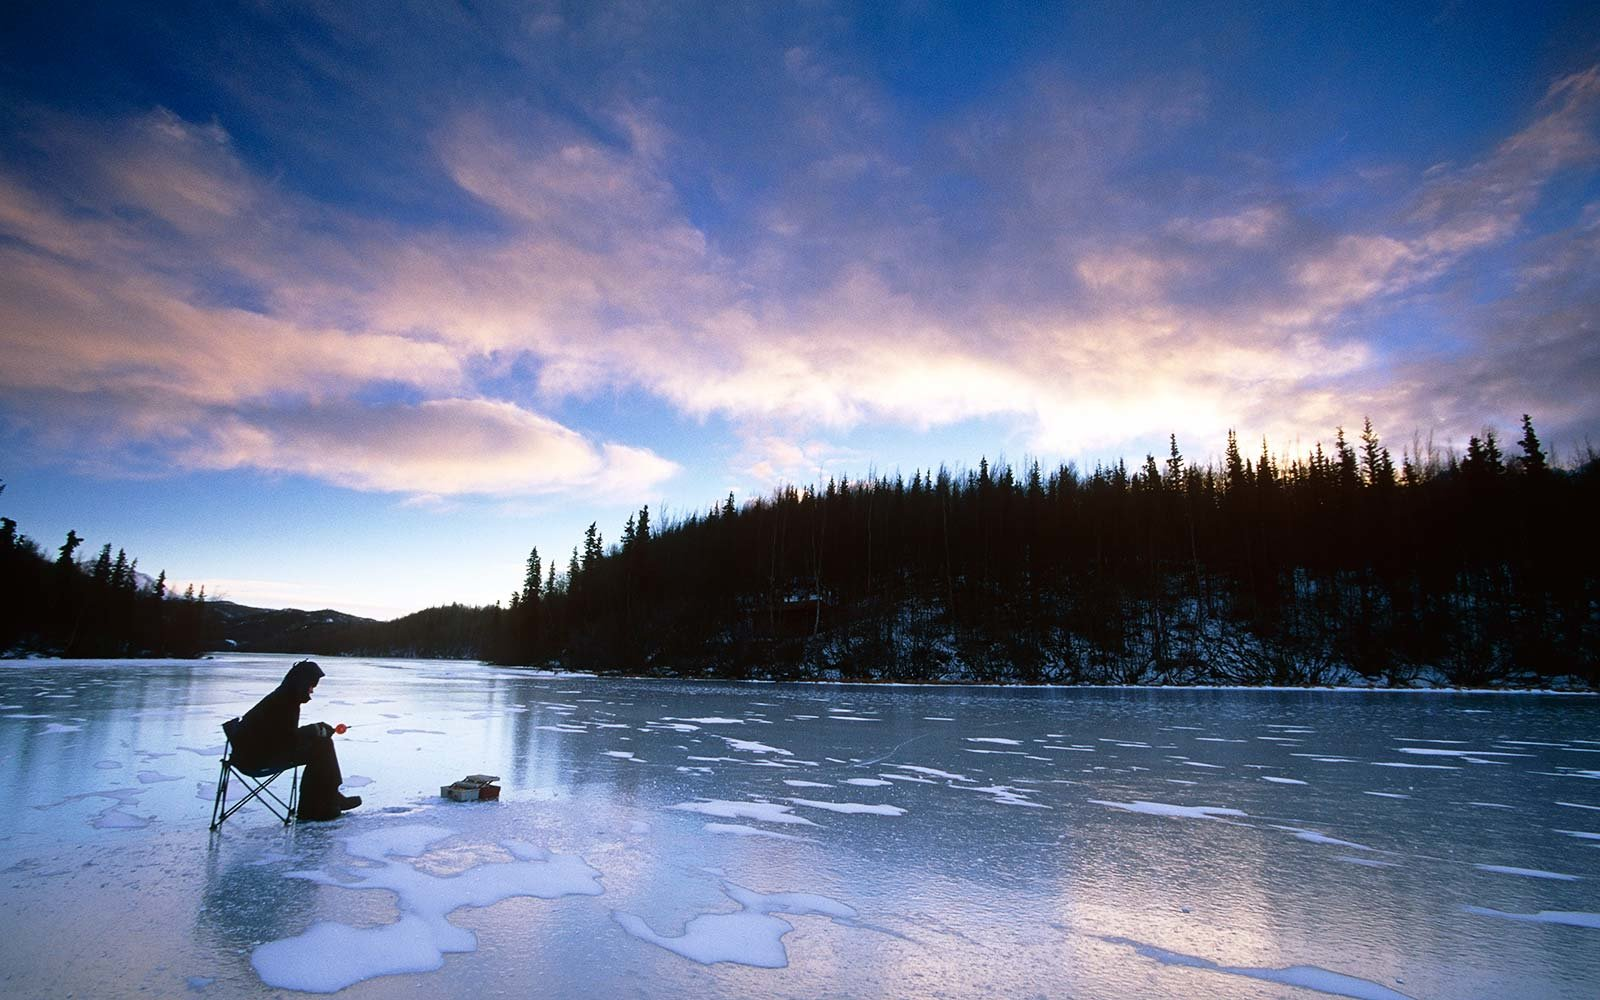 Go ice fishing in Alaska